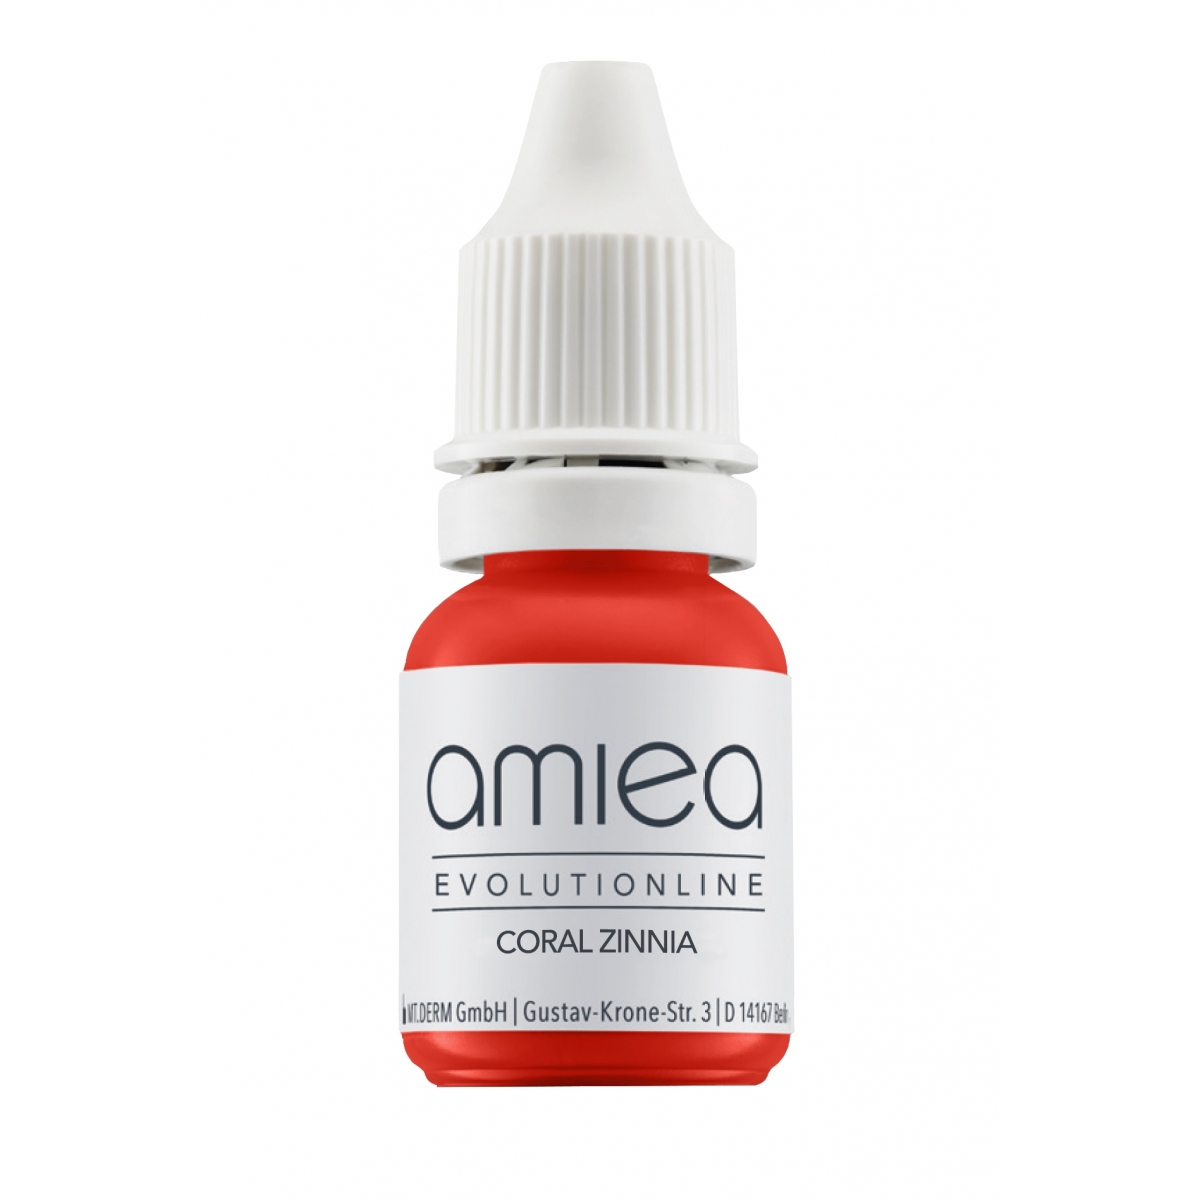 EVOLUTION LINE (10ml) - PIGMENT CORAL ZINNIA EVOLUTIONLINE AMIEA (10 ml)